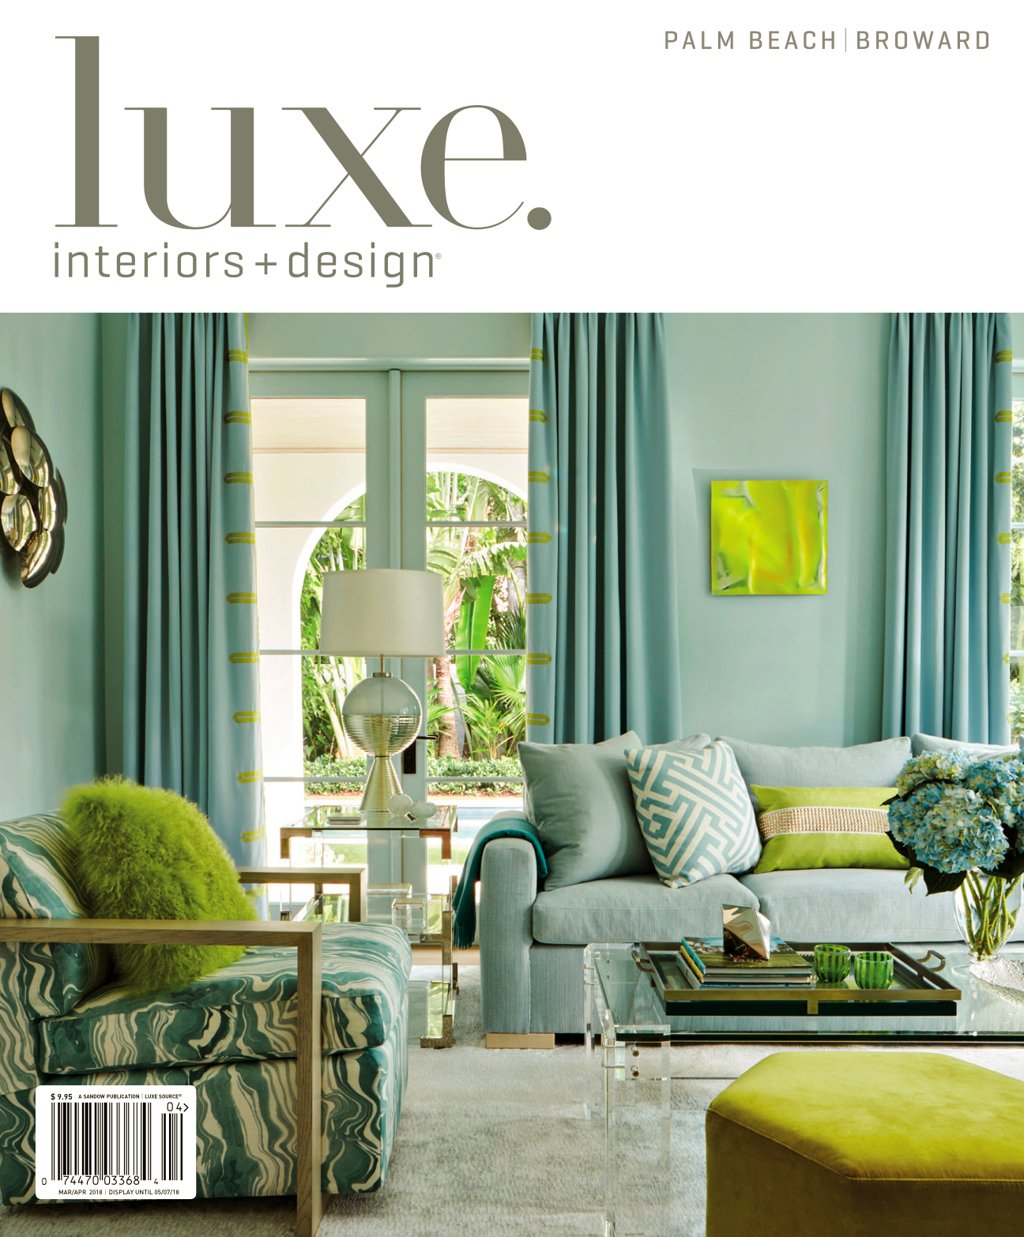 Luxe Magazine Palm Beach features our Cathy Choi acquisition on the cover